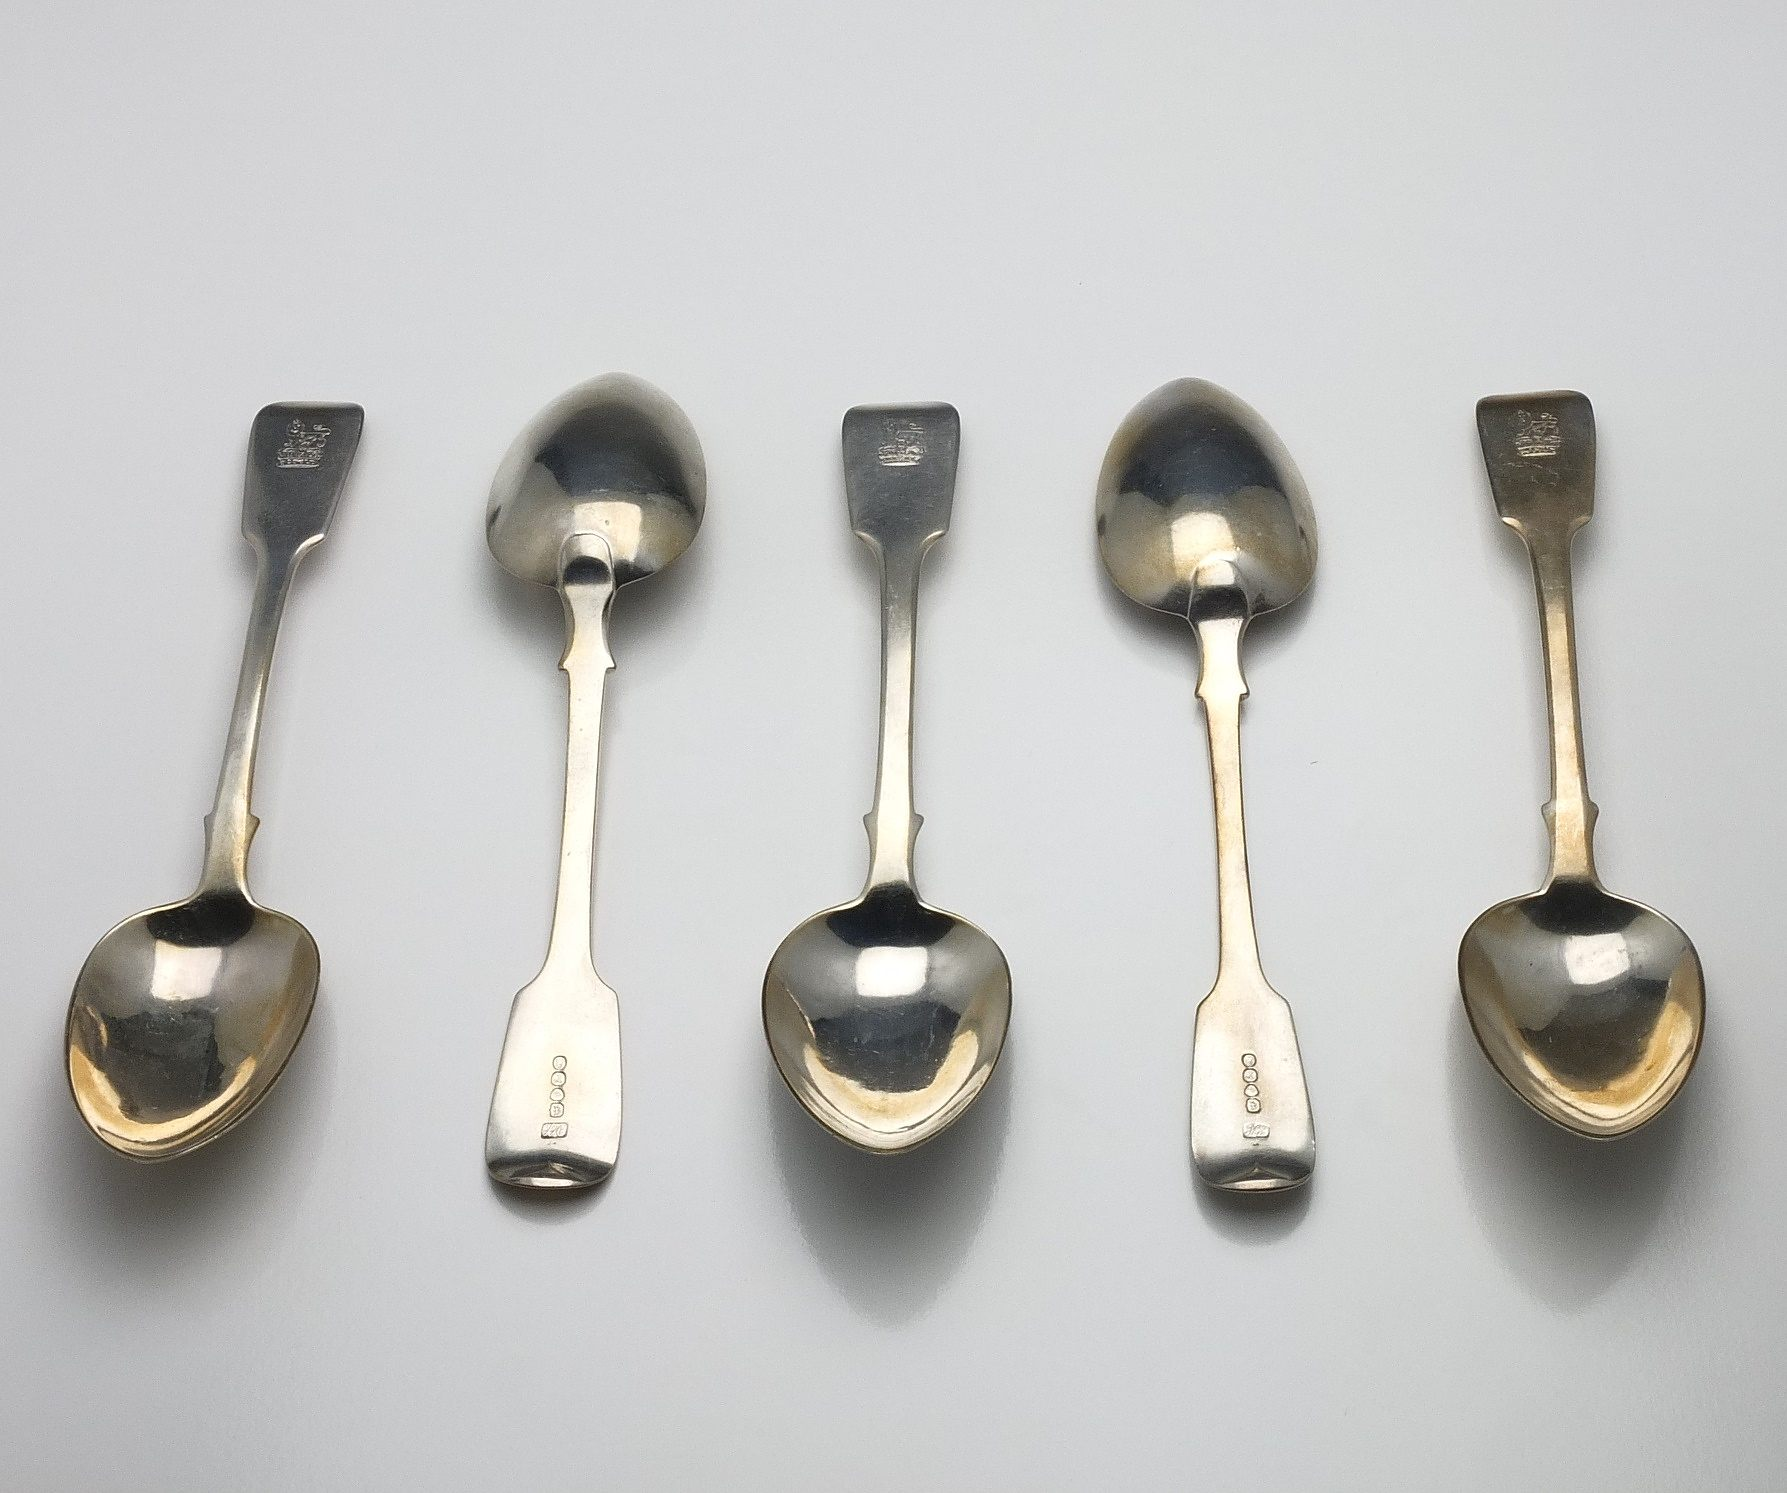 'Five Georgian Crested Sterling Silver Table Spoons Jonathan Hayne London 1832'